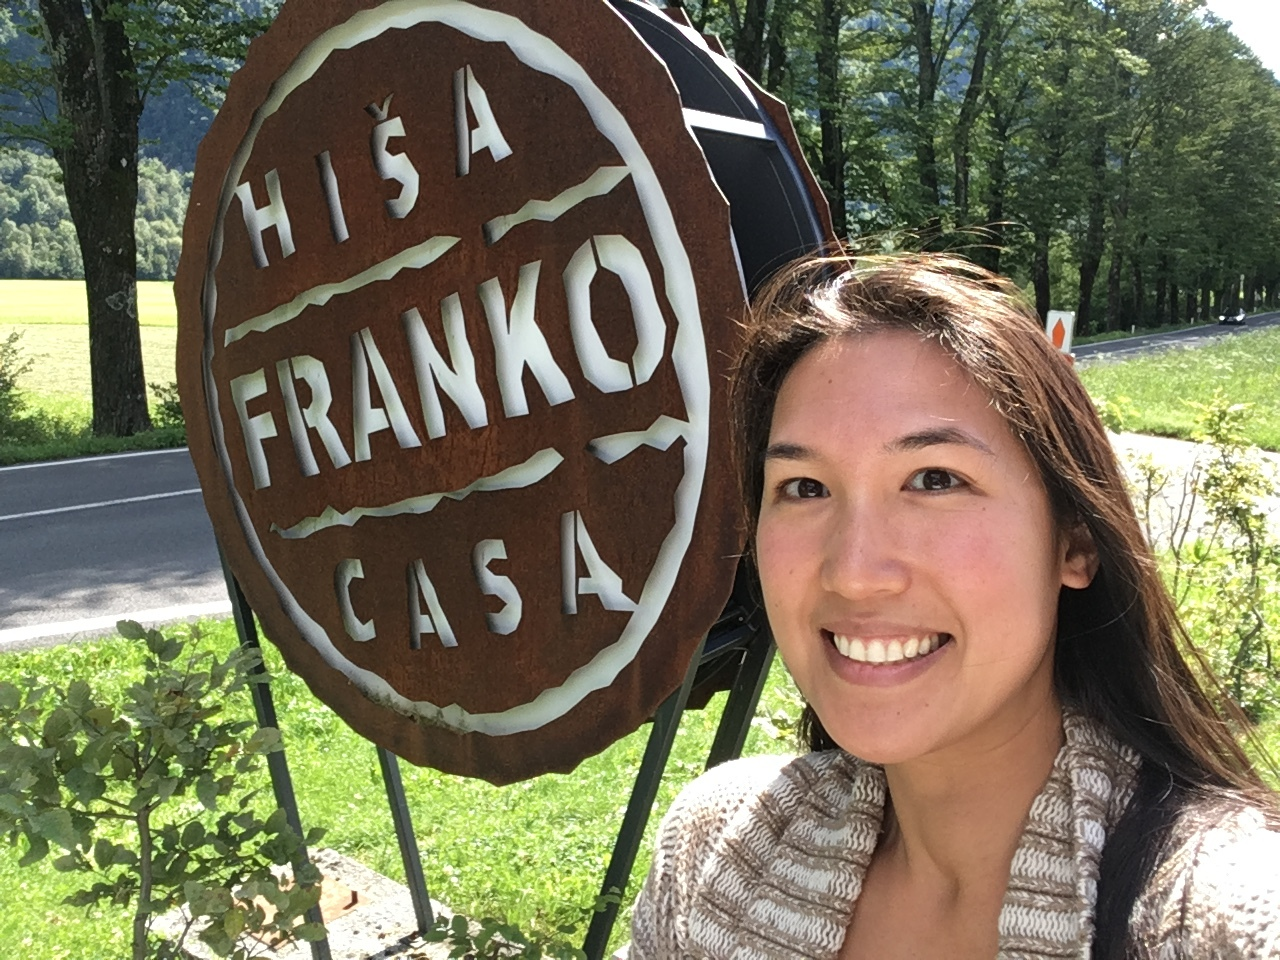 At  Hisa Franko , made famous by the Chef Table's episode on Slovenia and Ana Ro š . This place is so popular you need to make a reservation a year in advance.